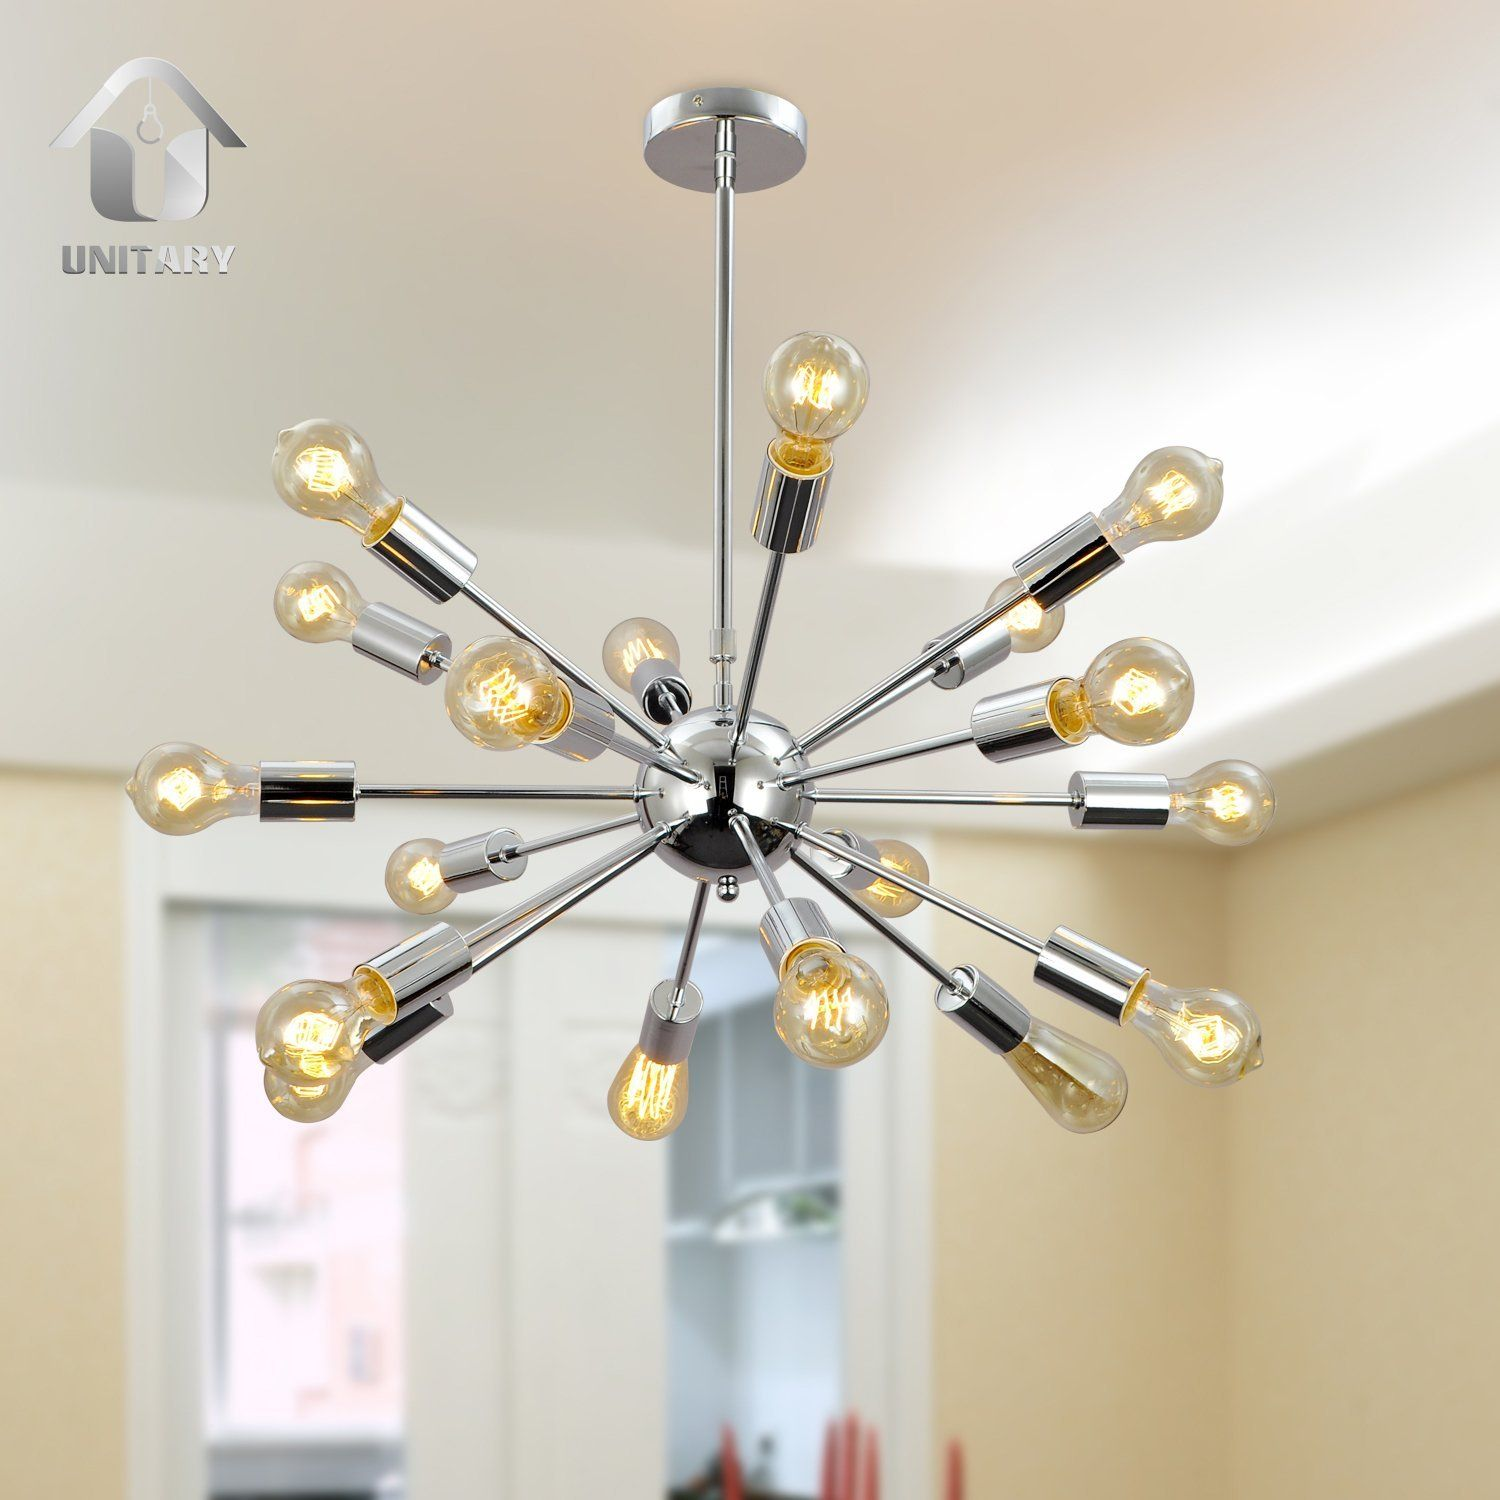 Unitary Brand Morden Metal Large Chandelier With 18 Lights Chrome Finish Com